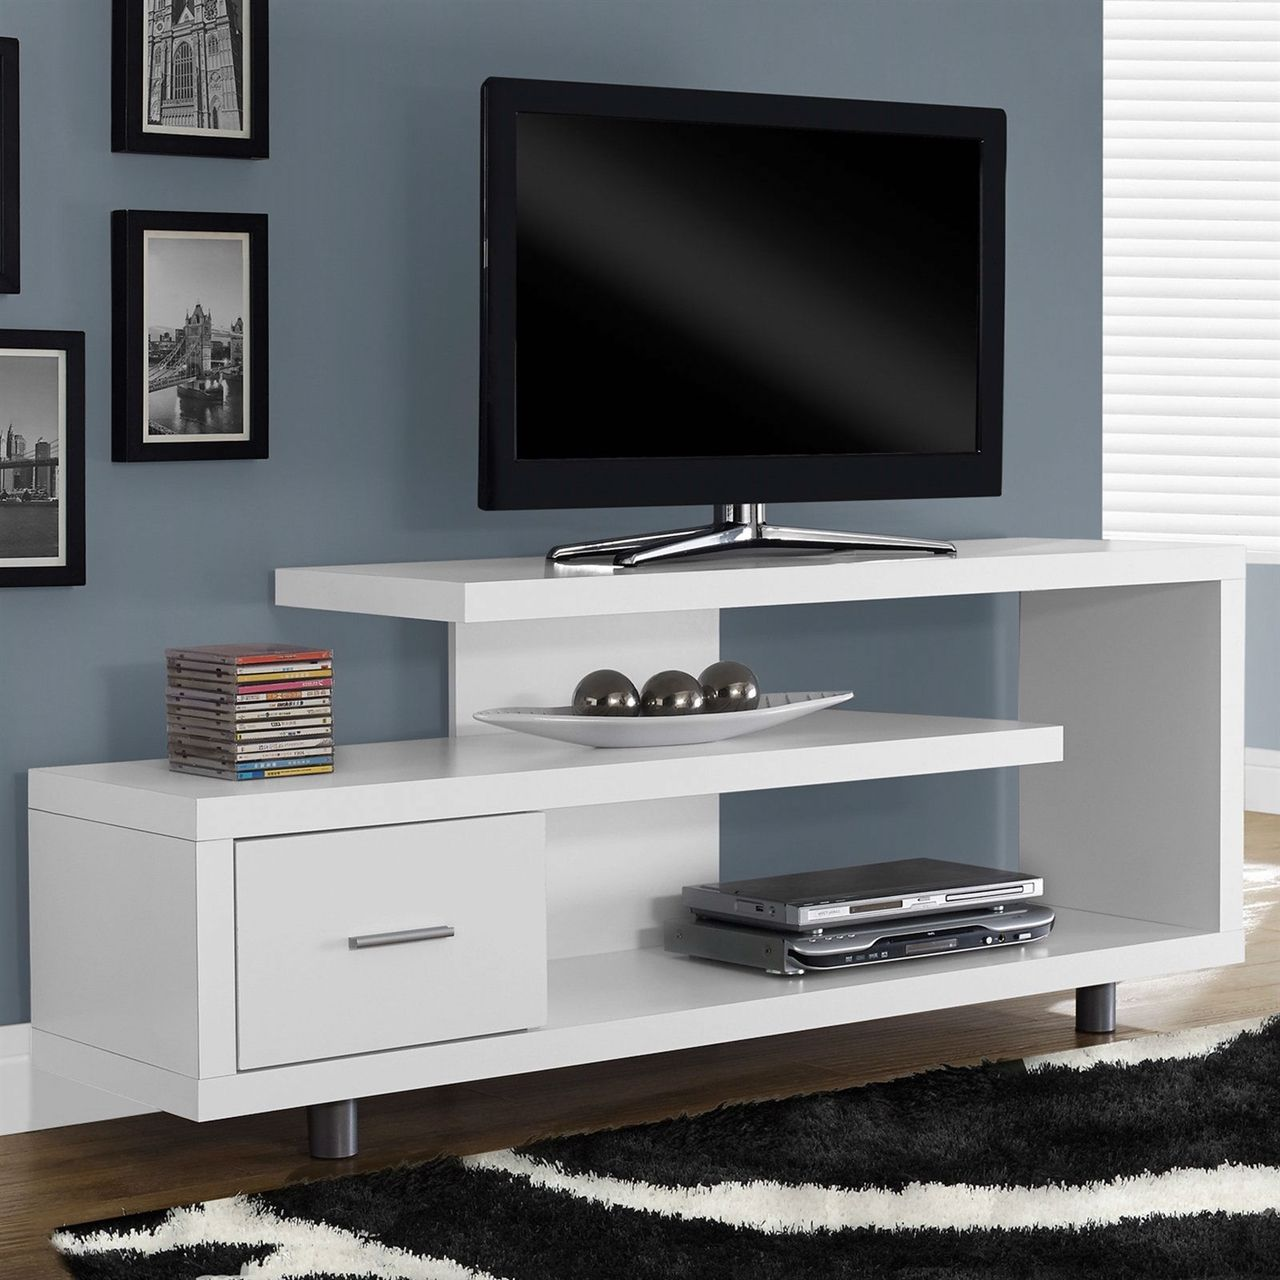 White Modern Tv Stand Fits Up To 60 Inch Flat Screen Tv Dream